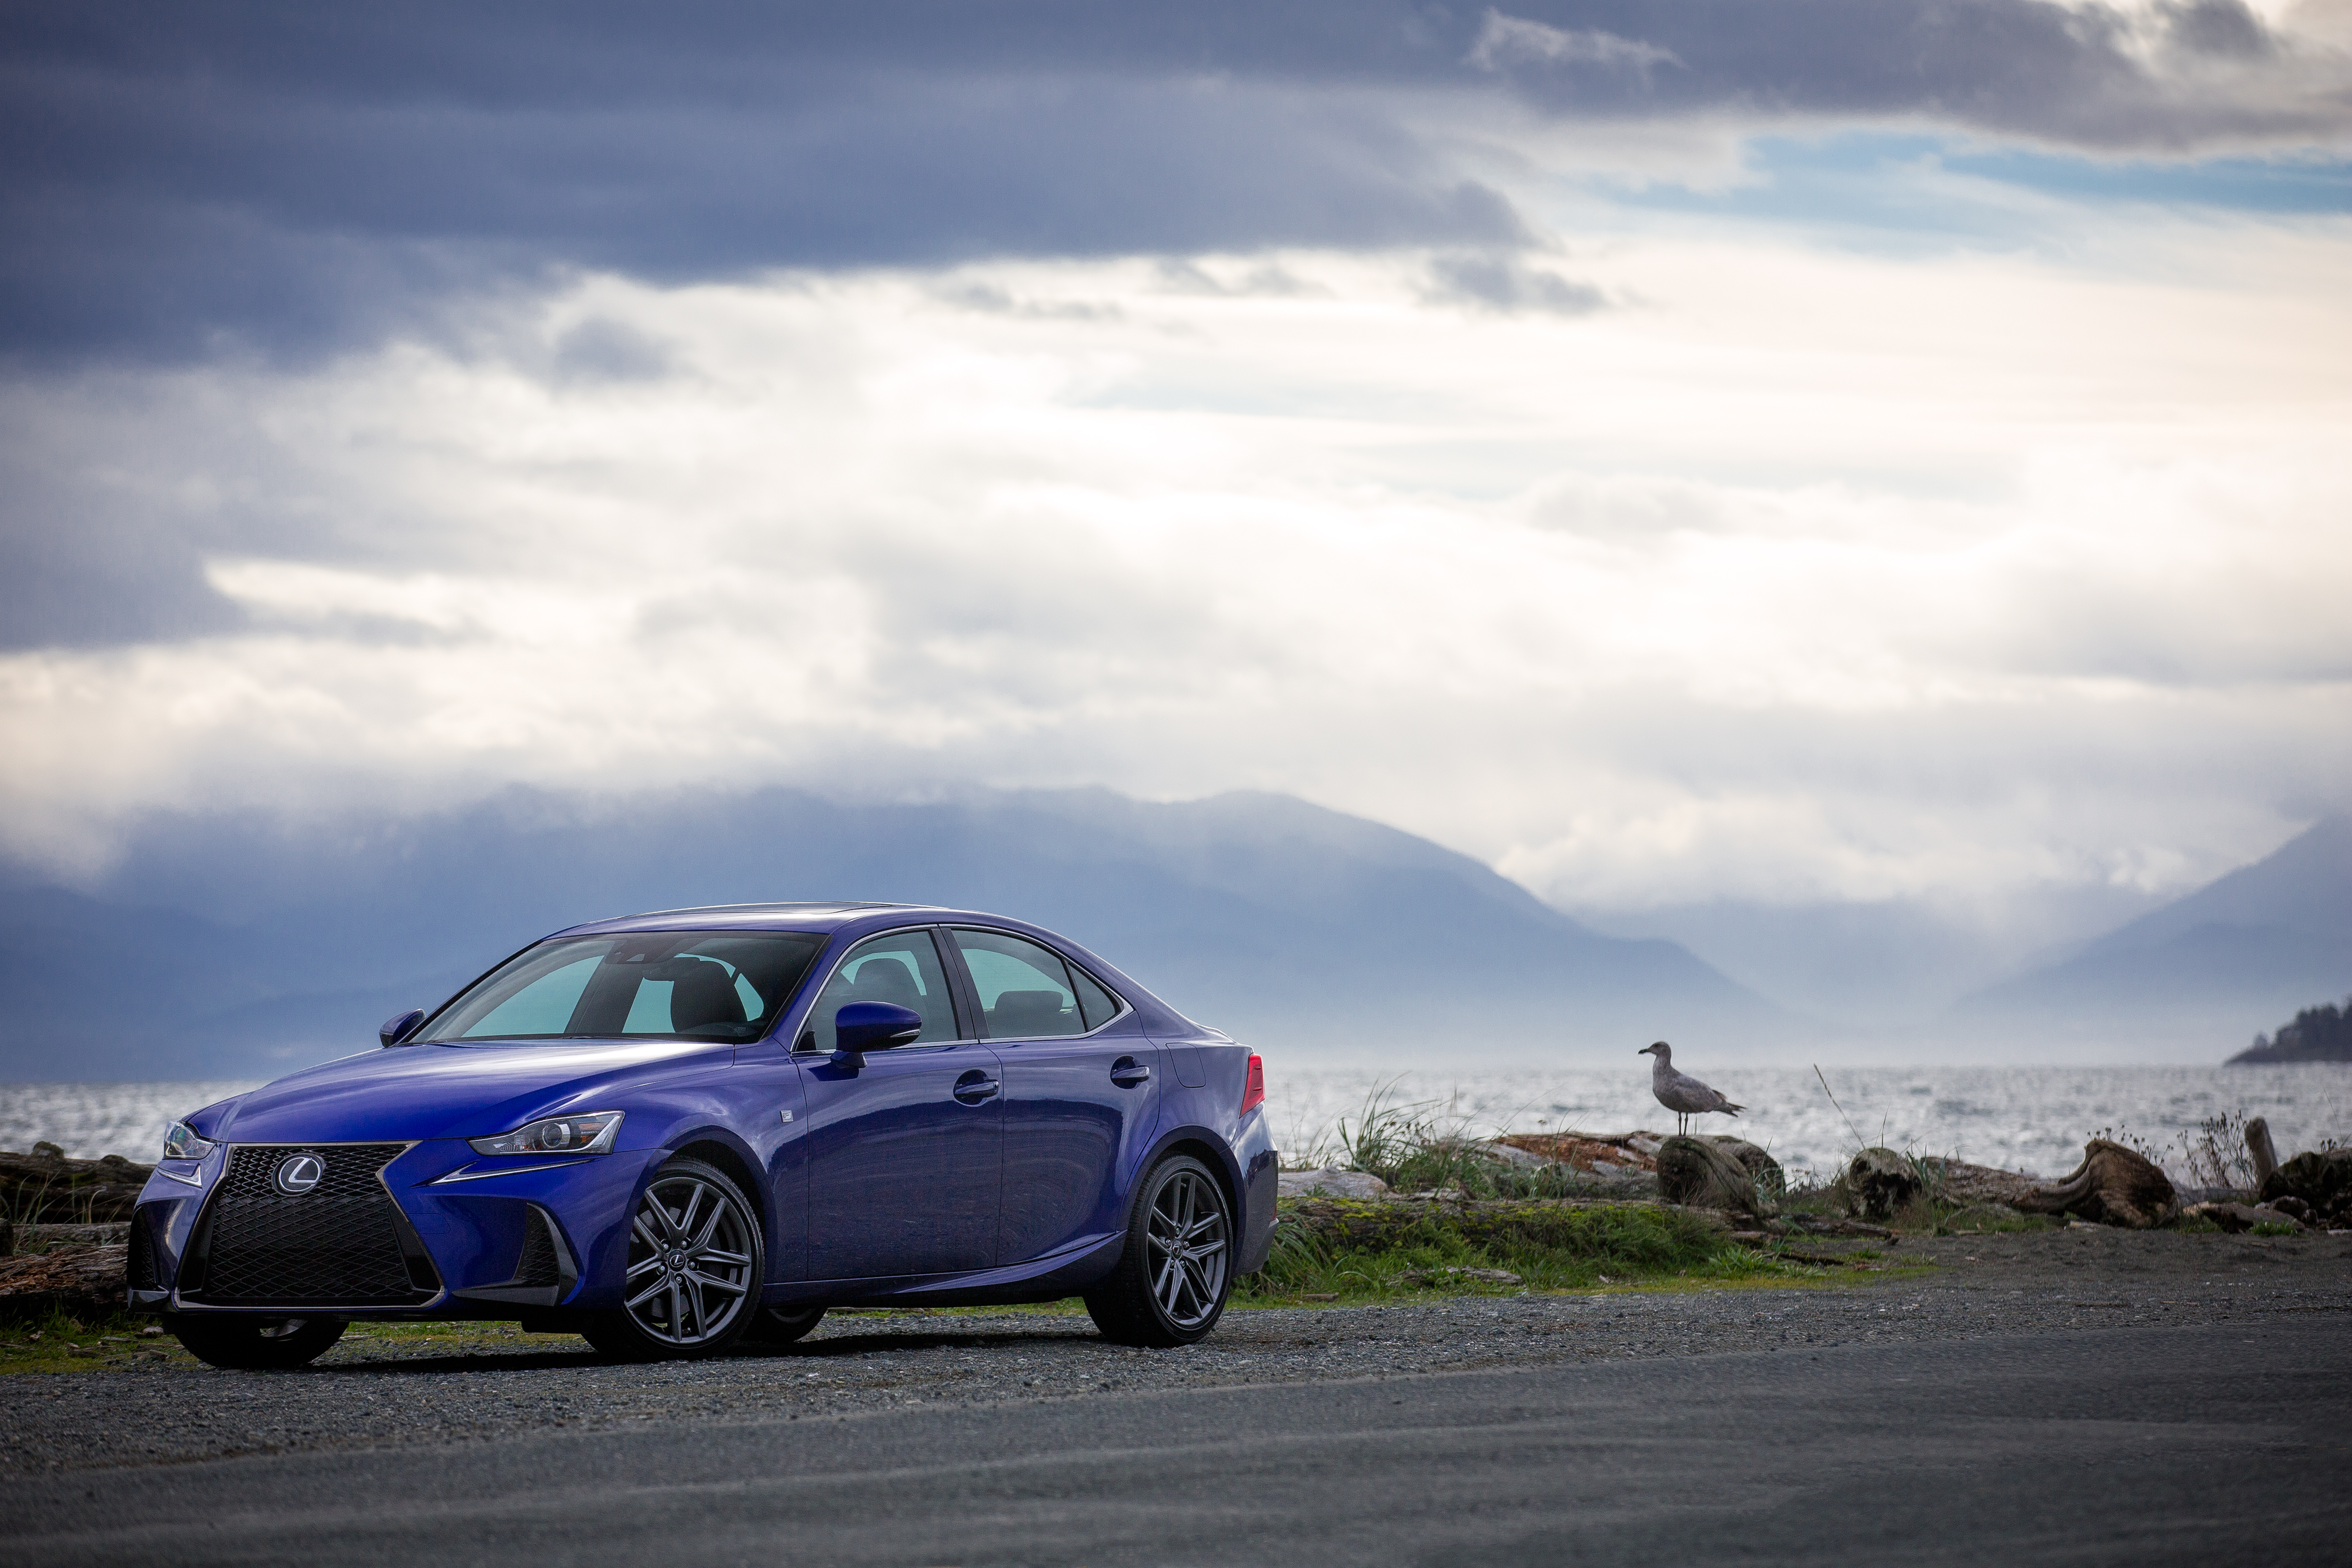 Become one with the road in the transformed 2017 Lexus IS